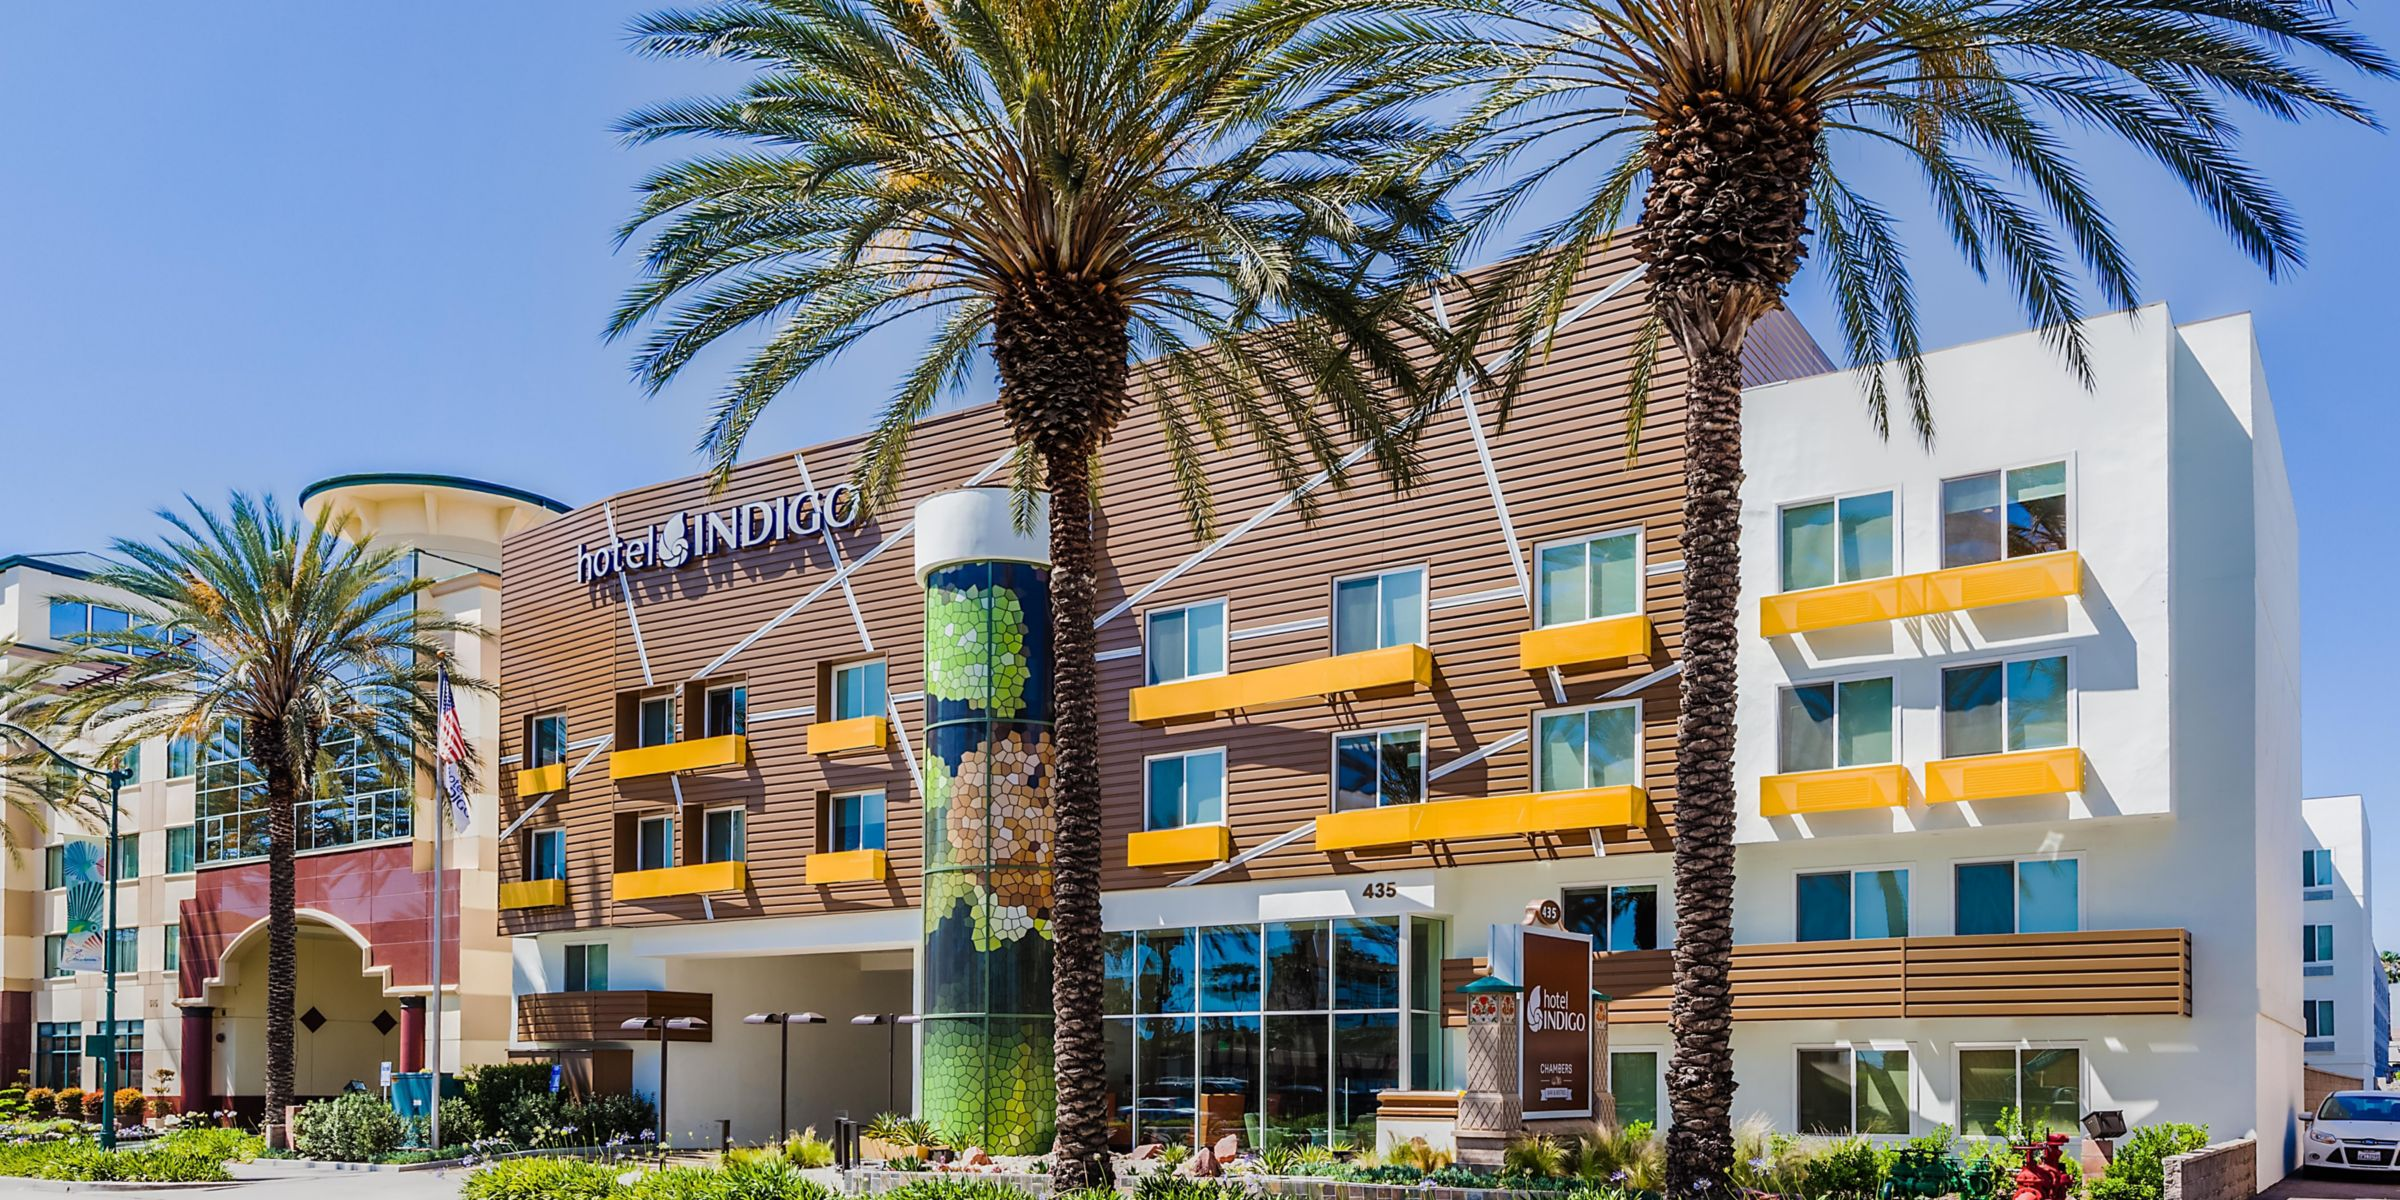 Welcome To The Hotel Indigo Anaheim No Resort Fees